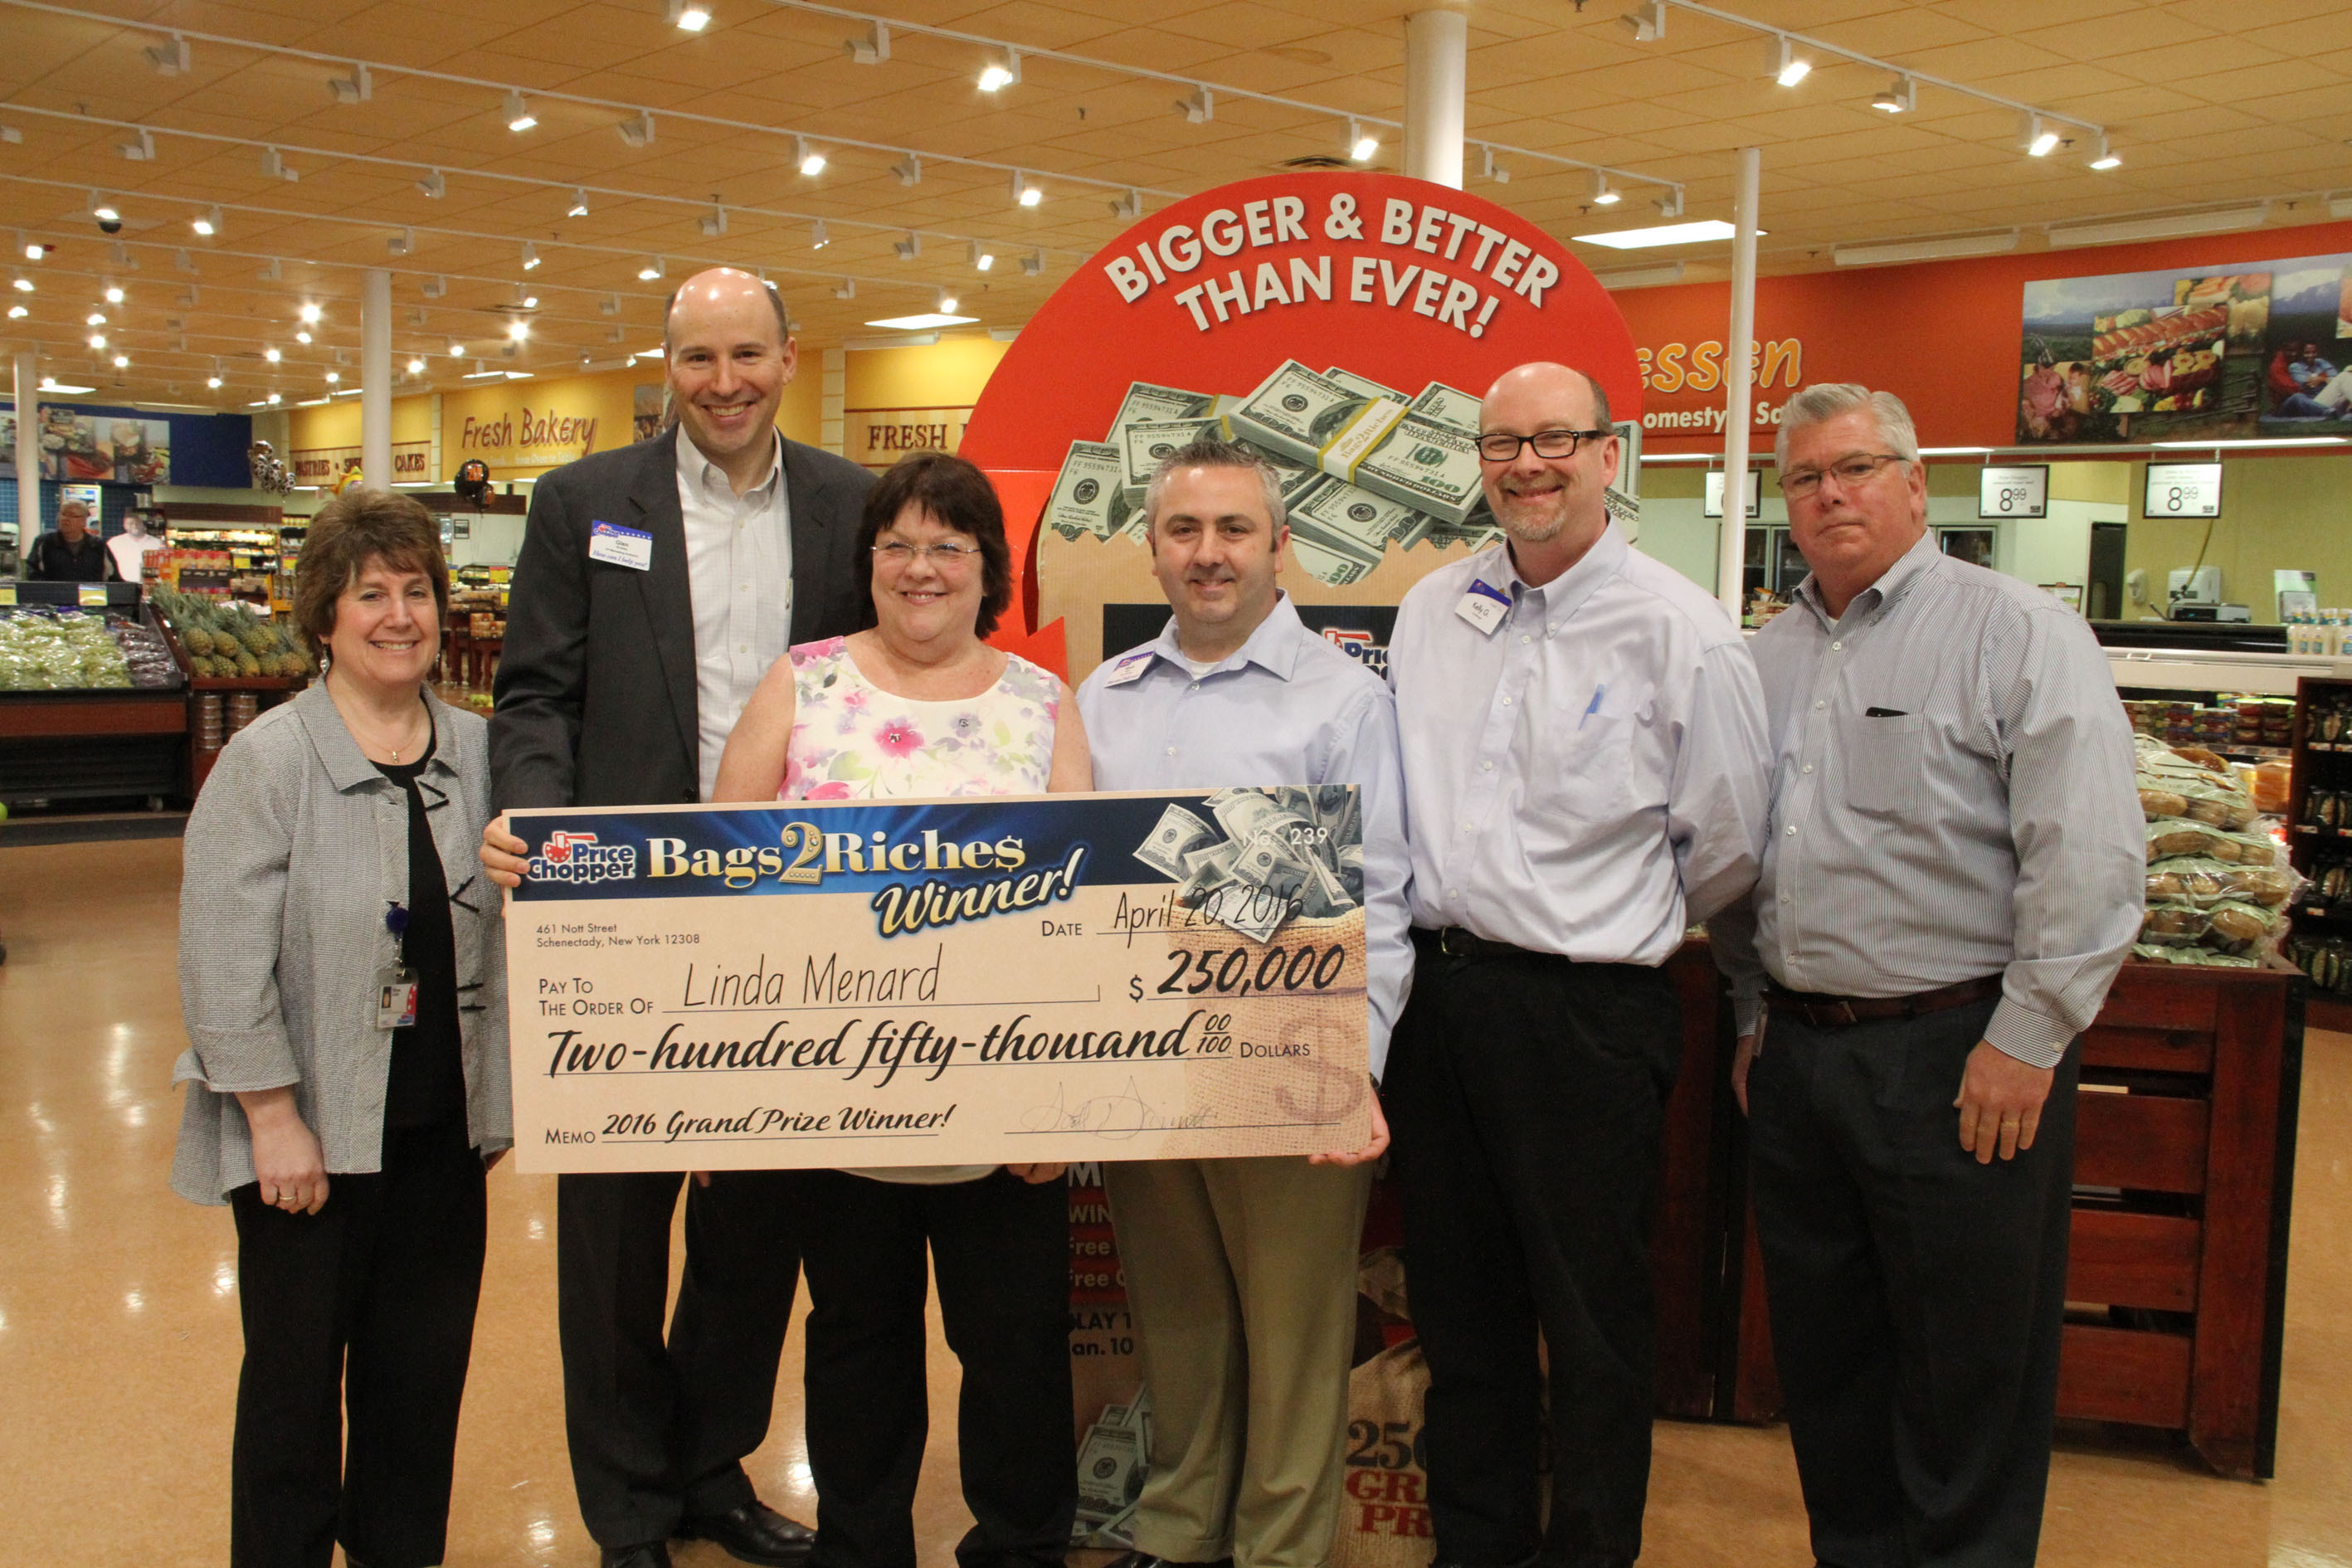 Grand Prize Winner Linda Menard (white floral top) celebrates with (from left to right): Mona Golub, Golub VP of Public Relations & Consumer Services, Glen Bradley, Golub VP of Marketing Analytics, Kevin Moore, Golub Zone Director, Kelly Greene, St. Albans Price Chopper Co-Manager and Bob Hewitt, Golub Region VP.